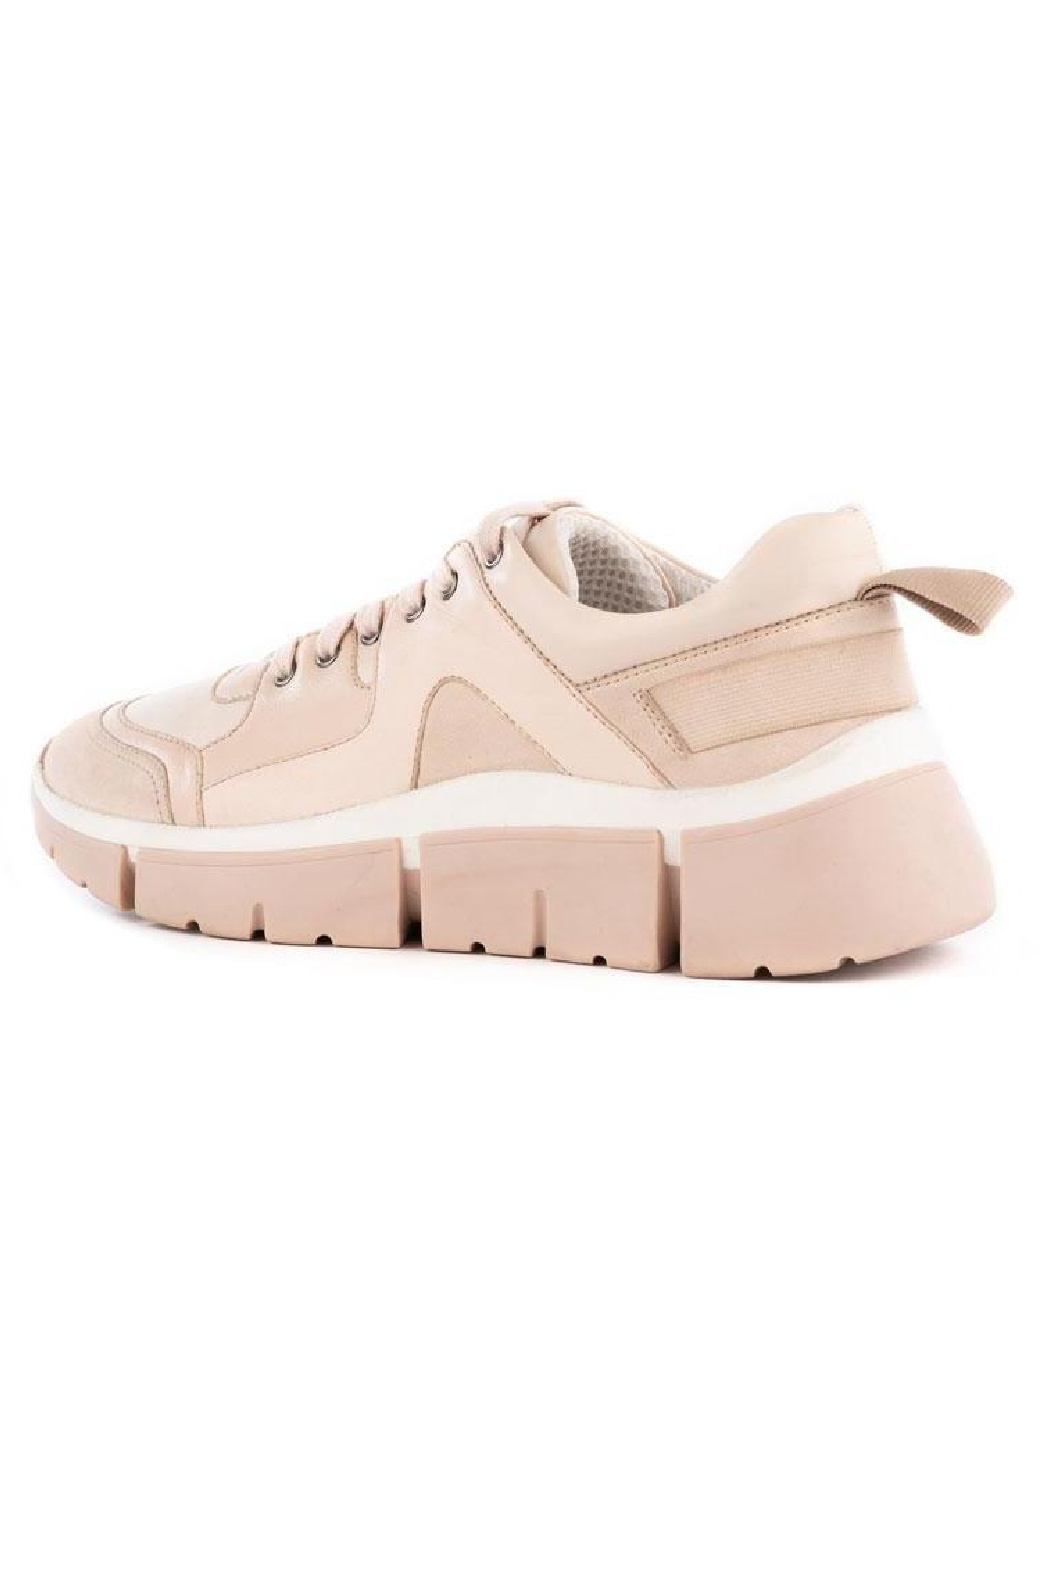 Seychelles  I'll Be There Leather Sneaker - Back Cropped Image